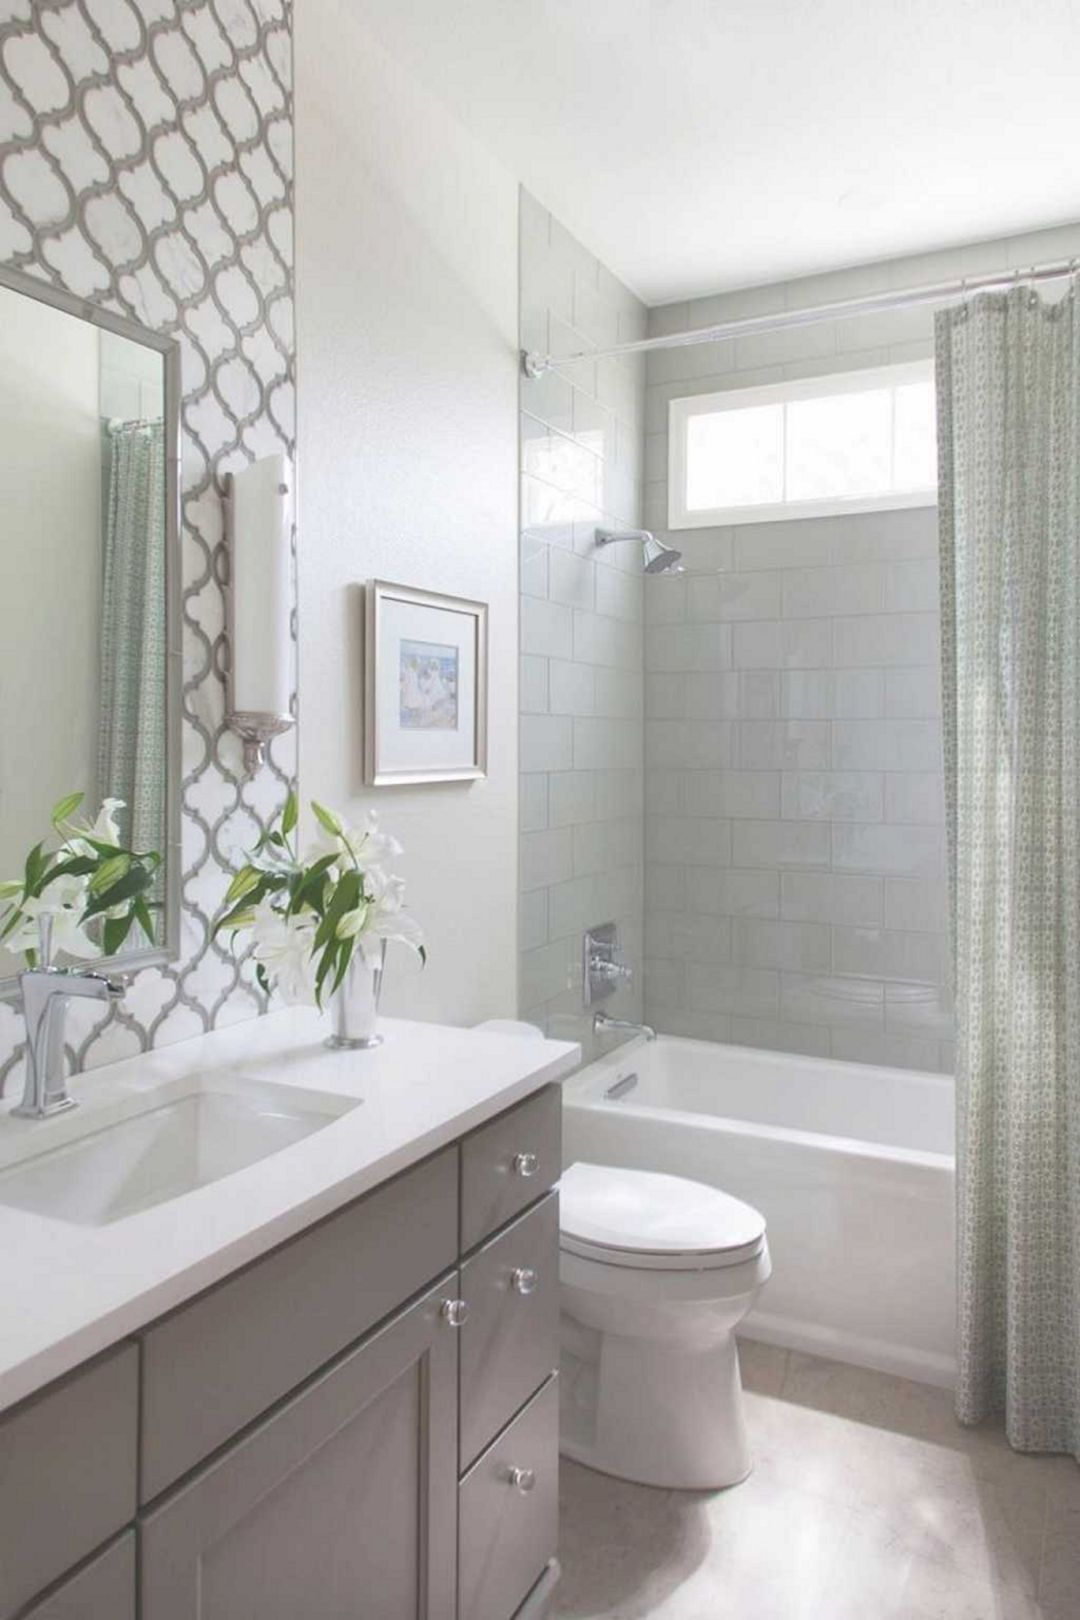 115 Extraordinary Small Bathroom Designs For Small Space 0114